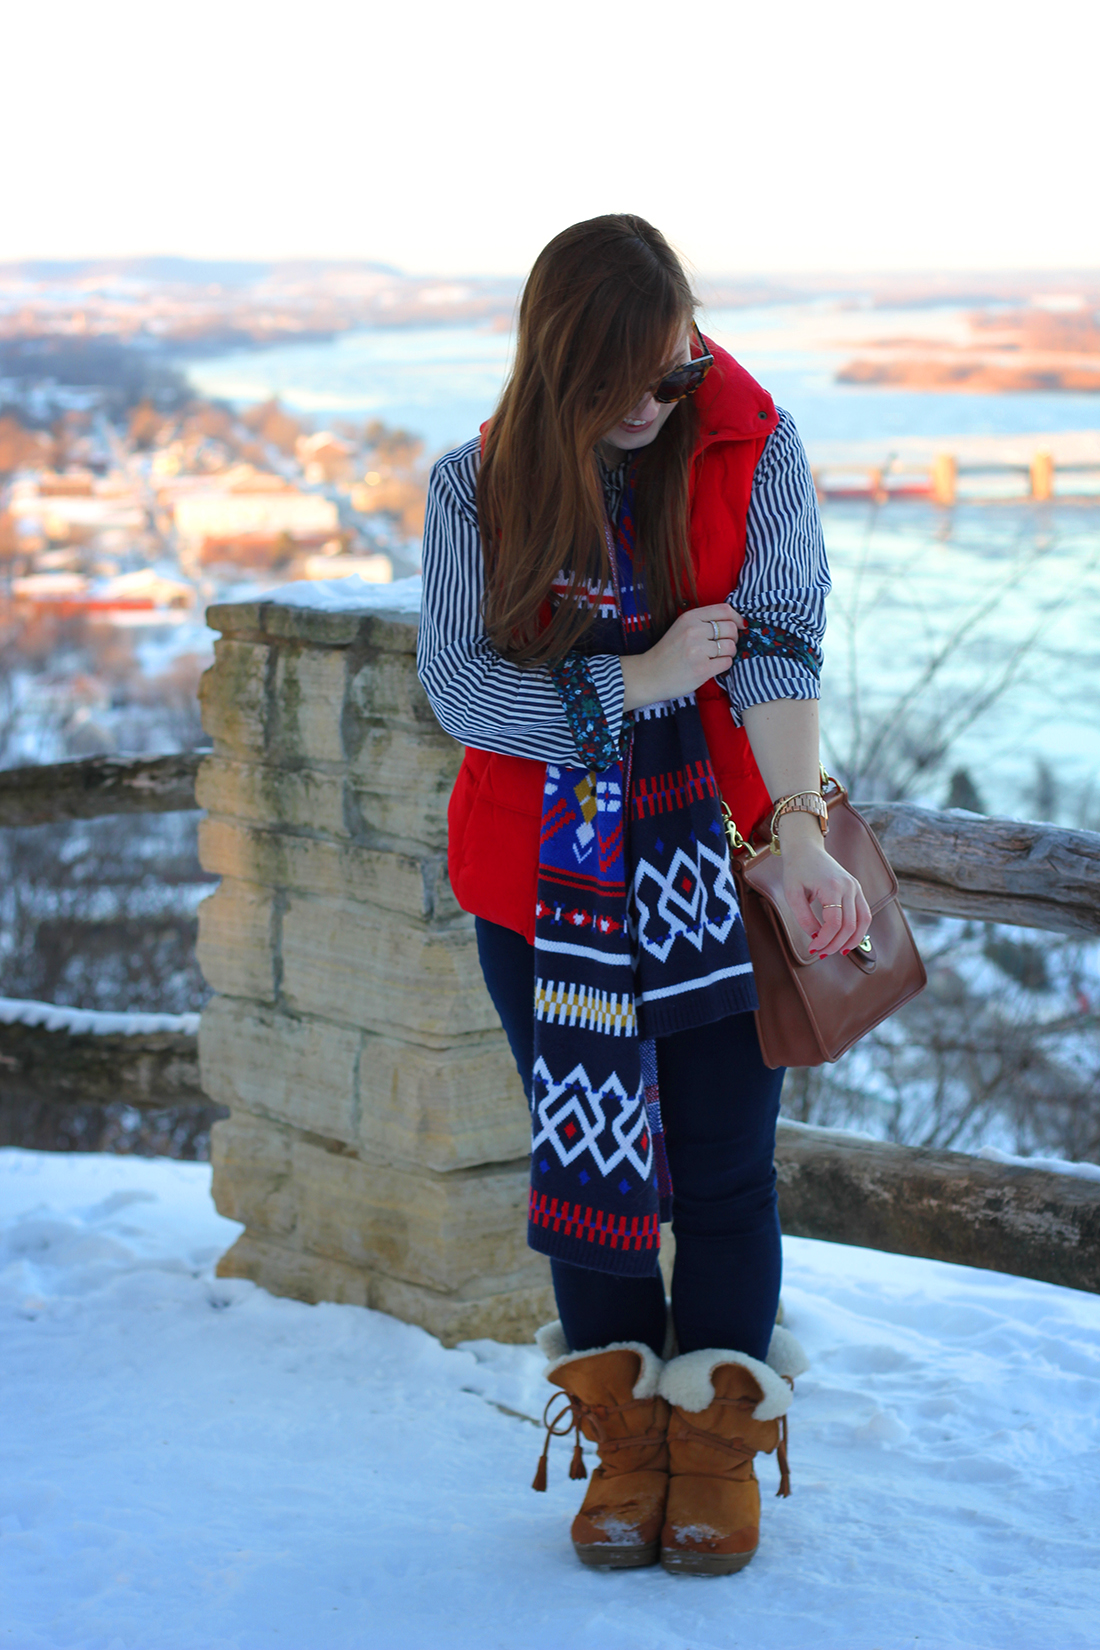 fair-isle-knit-scarf-puffy-vest-shearling-3